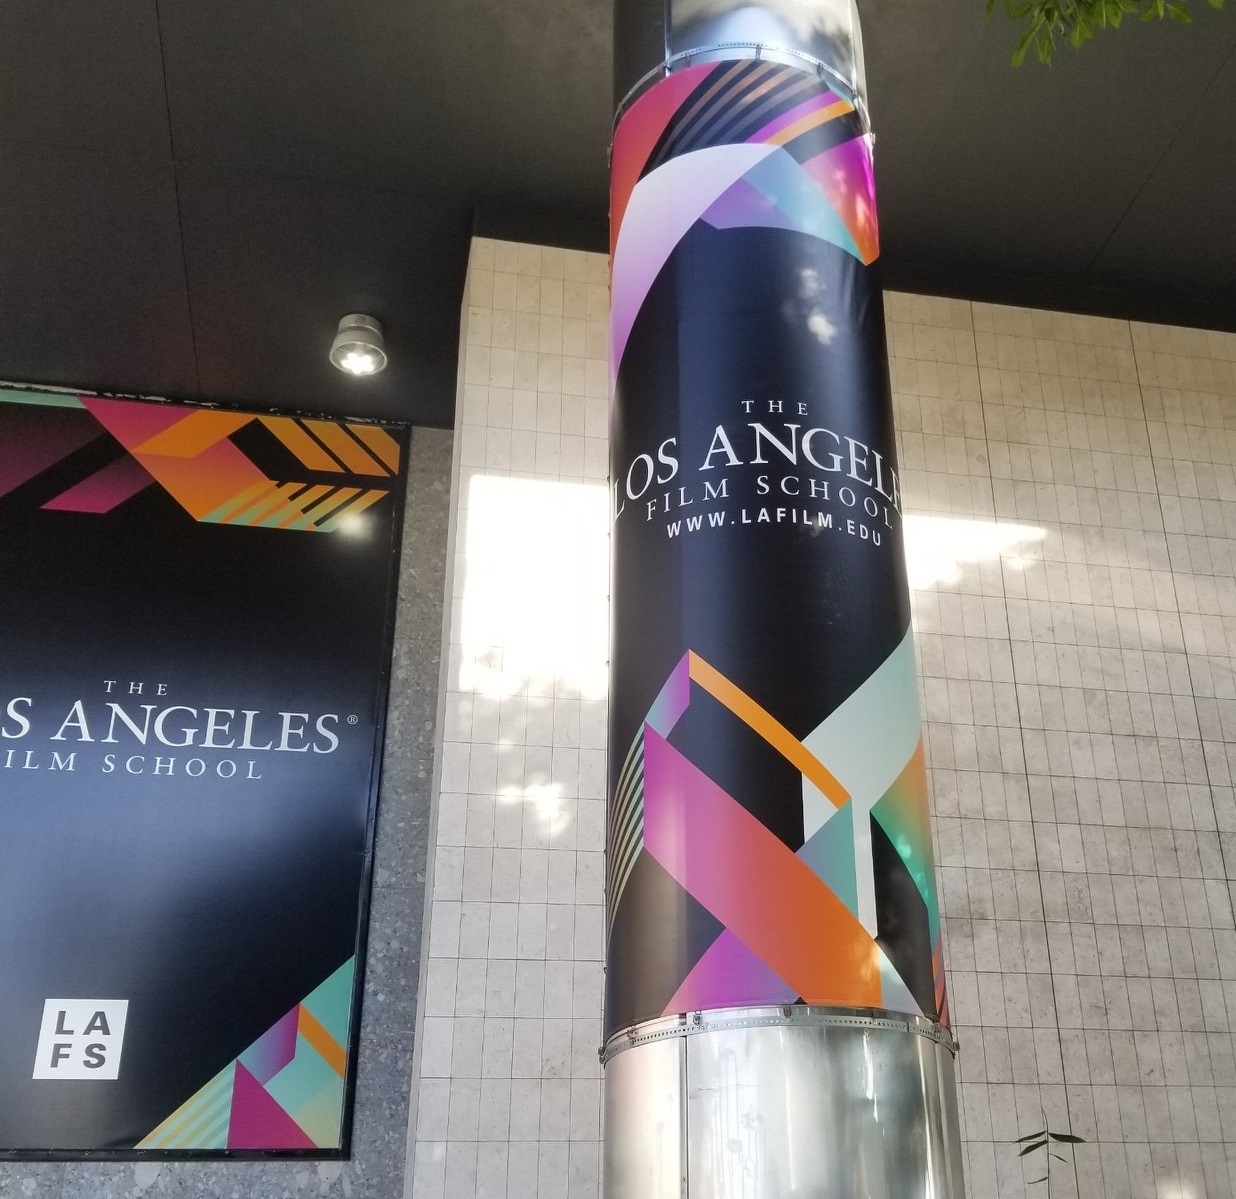 pole banner kit, Banners, Pole Banners, Sign Company Hollywood CA, LA Film School Banner Project, Hollywood Sign Company, Sign Makers Hollywood, Banner Company Hollywood CA, Premium Sign Solutions Los Angeles, Los Angeles Sign Company